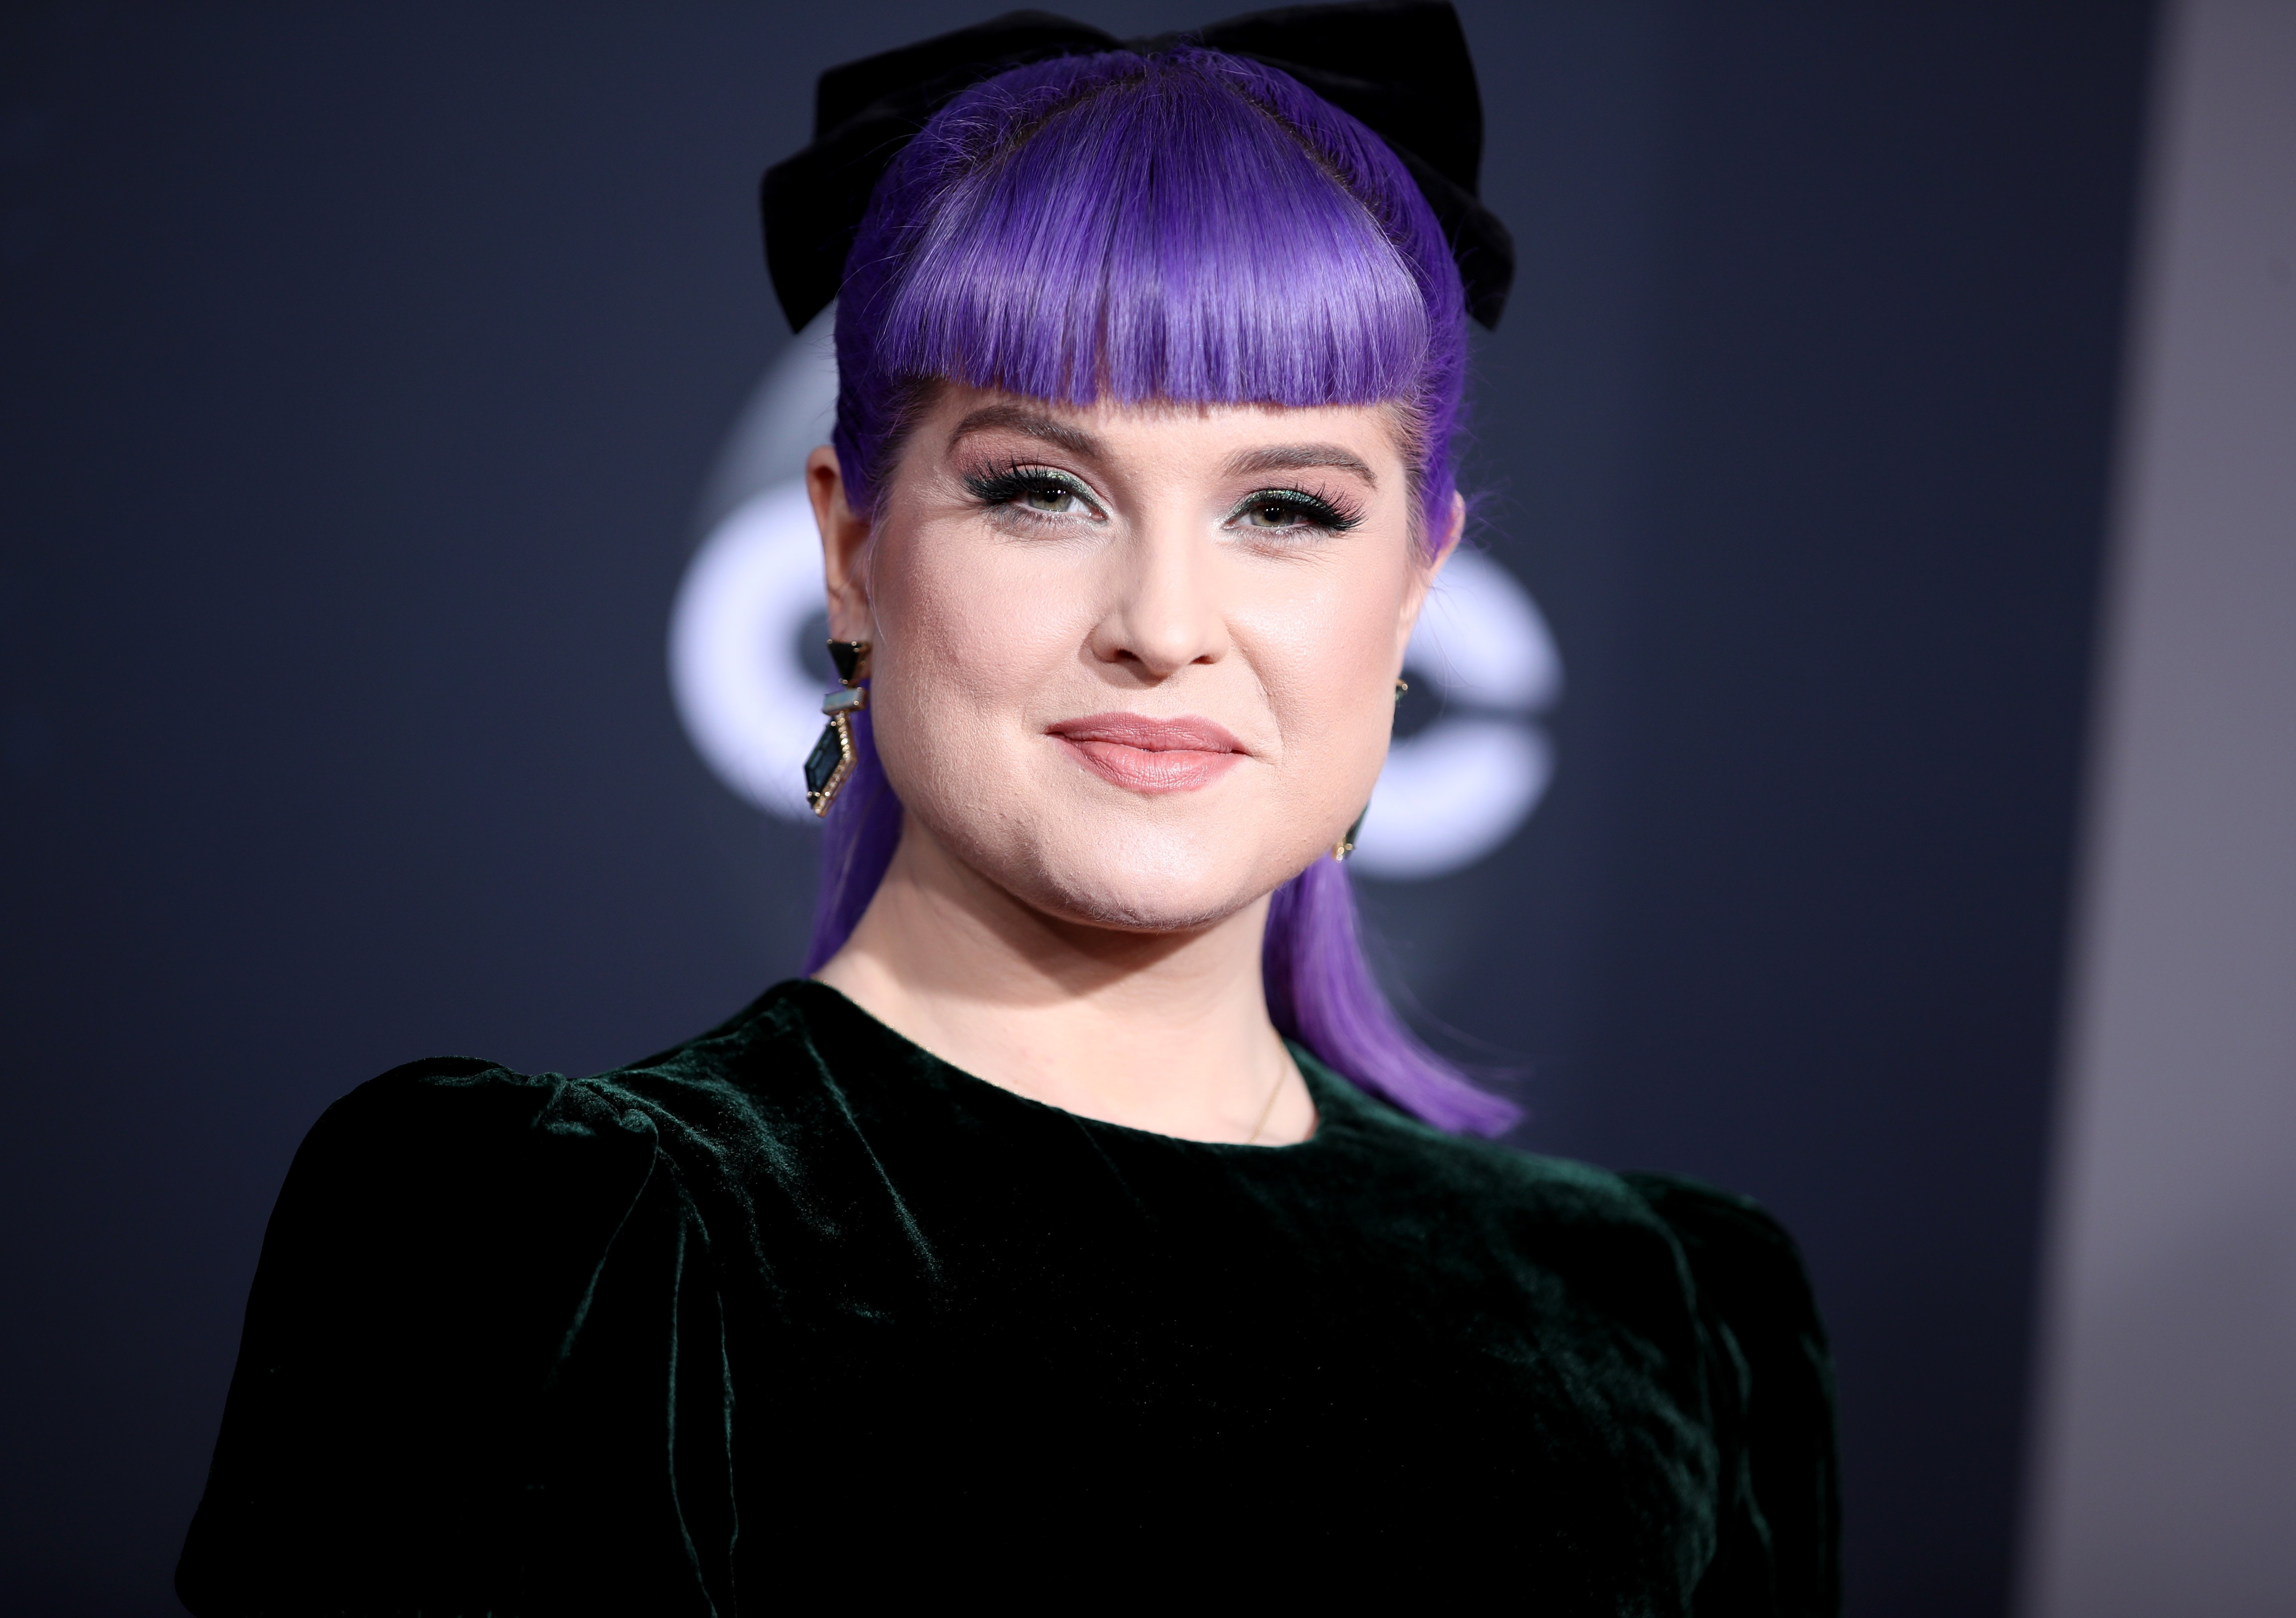 Kelly Osbourne attends the 2019 American Music Awards on November 24, 2019, in Los Angeles, California. | Source: Getty Images.